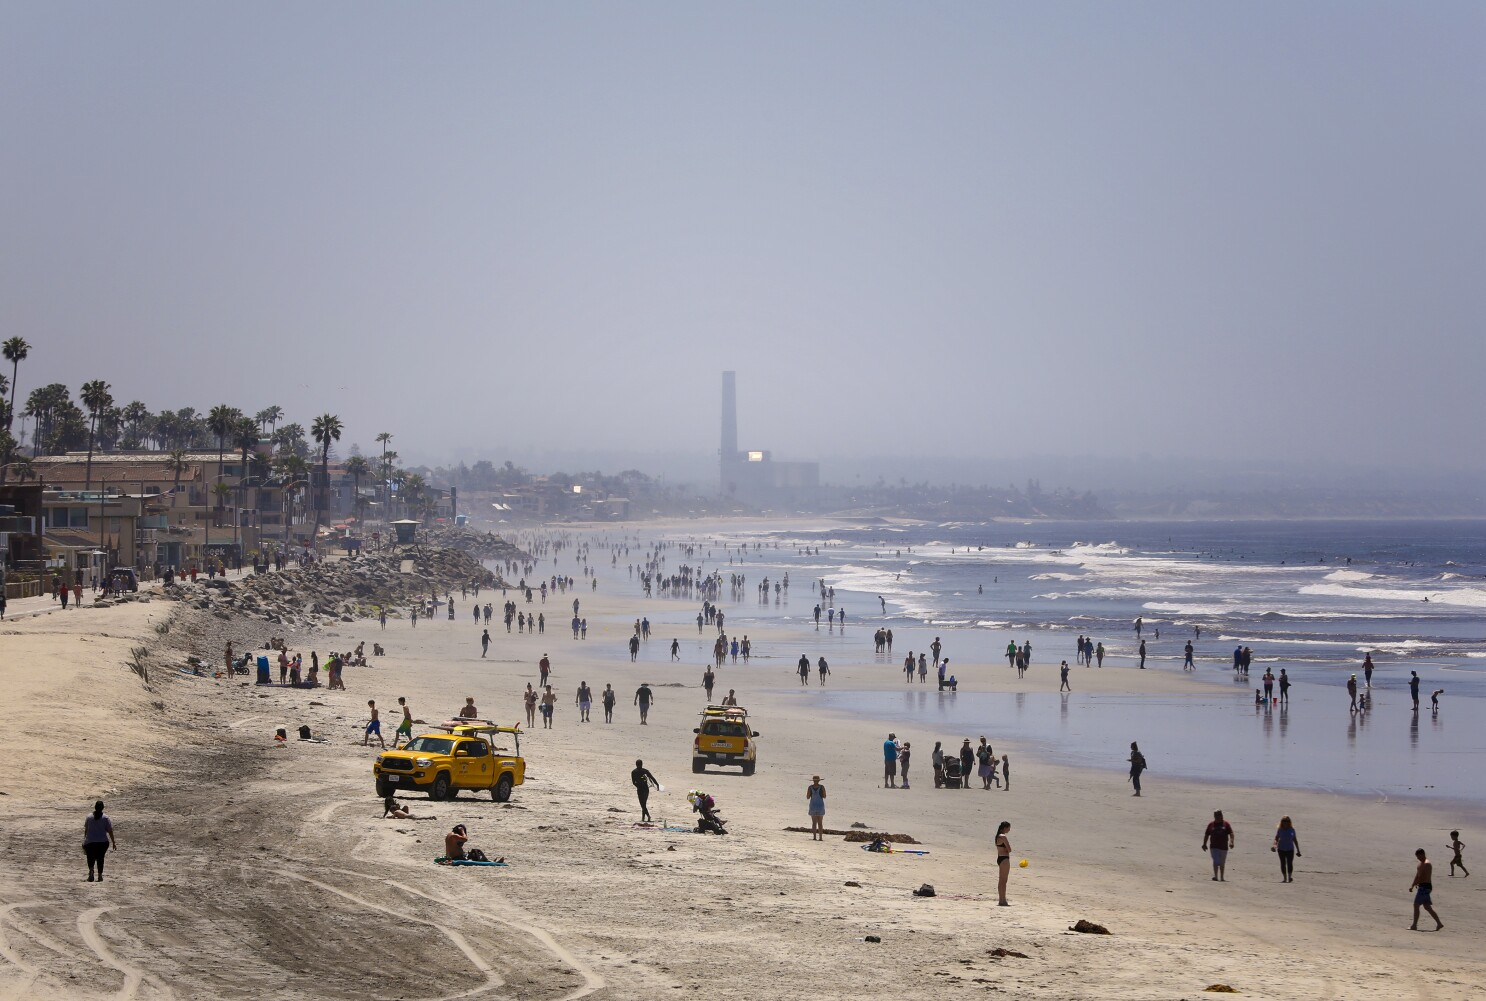 San Diegans Get Back To The Beach Cautiously On Closely Watched Opening Weekend The San Diego Union Tribune